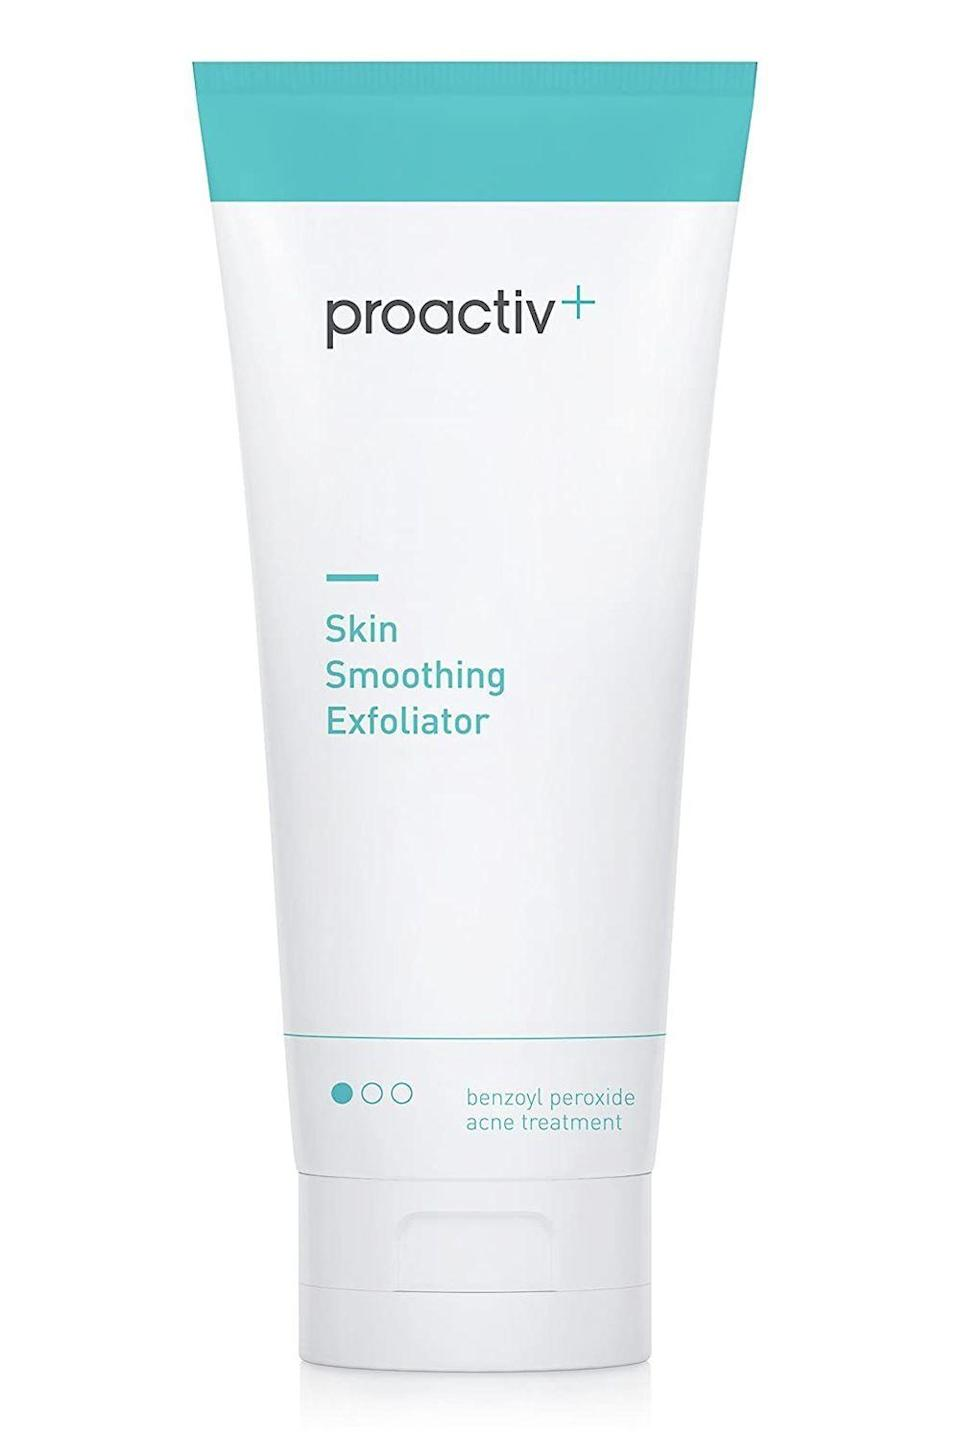 """<p><strong>Proactiv</strong></p><p>ulta.com</p><p><strong>$40.00</strong></p><p><a href=""""https://go.redirectingat.com?id=74968X1596630&url=https%3A%2F%2Fwww.ulta.com%2Fskin-smoothing-exfoliator%3FproductId%3DxlsImpprod14651013&sref=https%3A%2F%2Fwww.cosmopolitan.com%2Fstyle-beauty%2Fbeauty%2Fg33369976%2Fbest-benzoyl-peroxide-products%2F"""" rel=""""nofollow noopener"""" target=""""_blank"""" data-ylk=""""slk:Shop Now"""" class=""""link rapid-noclick-resp"""">Shop Now</a></p><p>This benzoyl peroxide <a href=""""https://www.cosmopolitan.com/style-beauty/beauty/a53481/how-to-exfoliate-your-face/"""" rel=""""nofollow noopener"""" target=""""_blank"""" data-ylk=""""slk:exfoliator"""" class=""""link rapid-noclick-resp"""">exfoliator</a> legit does it all. The creamy formula deep-cleans skin, <strong>eliminates dead skin with little tiny exfoliating beads and glycolic acid</strong>, and kills bad bacteria with 2.5 percent benzoyl peroxide. Rub it over your shoulders, back, butt—wherever you get body acne—let it sit for 30 seconds, then rinse.</p>"""